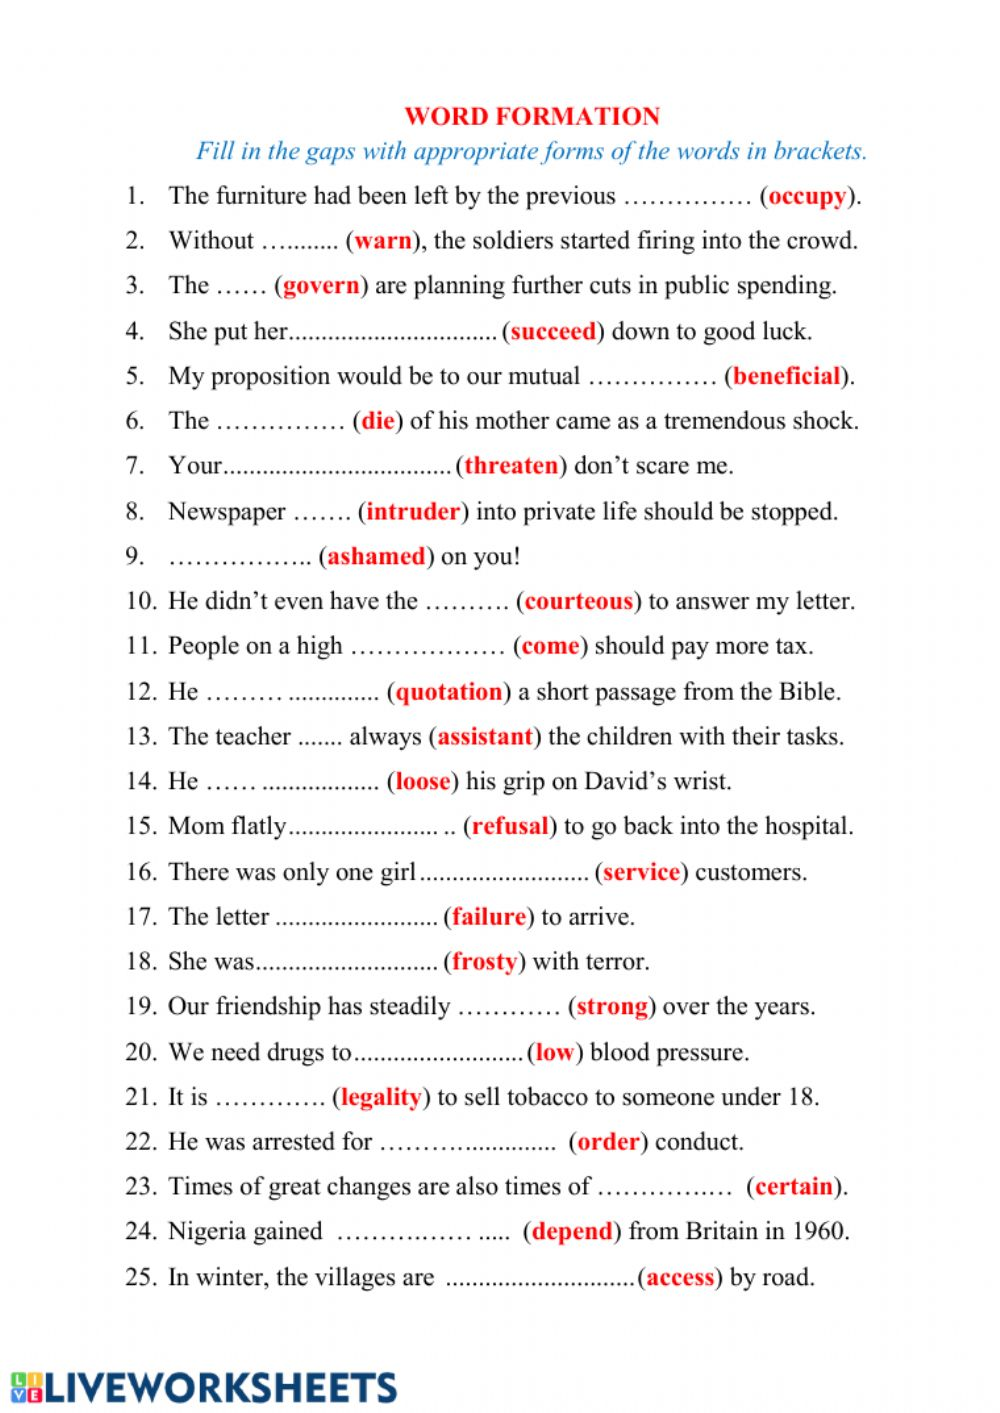 hight resolution of Word Formation online worksheet for Intermediate